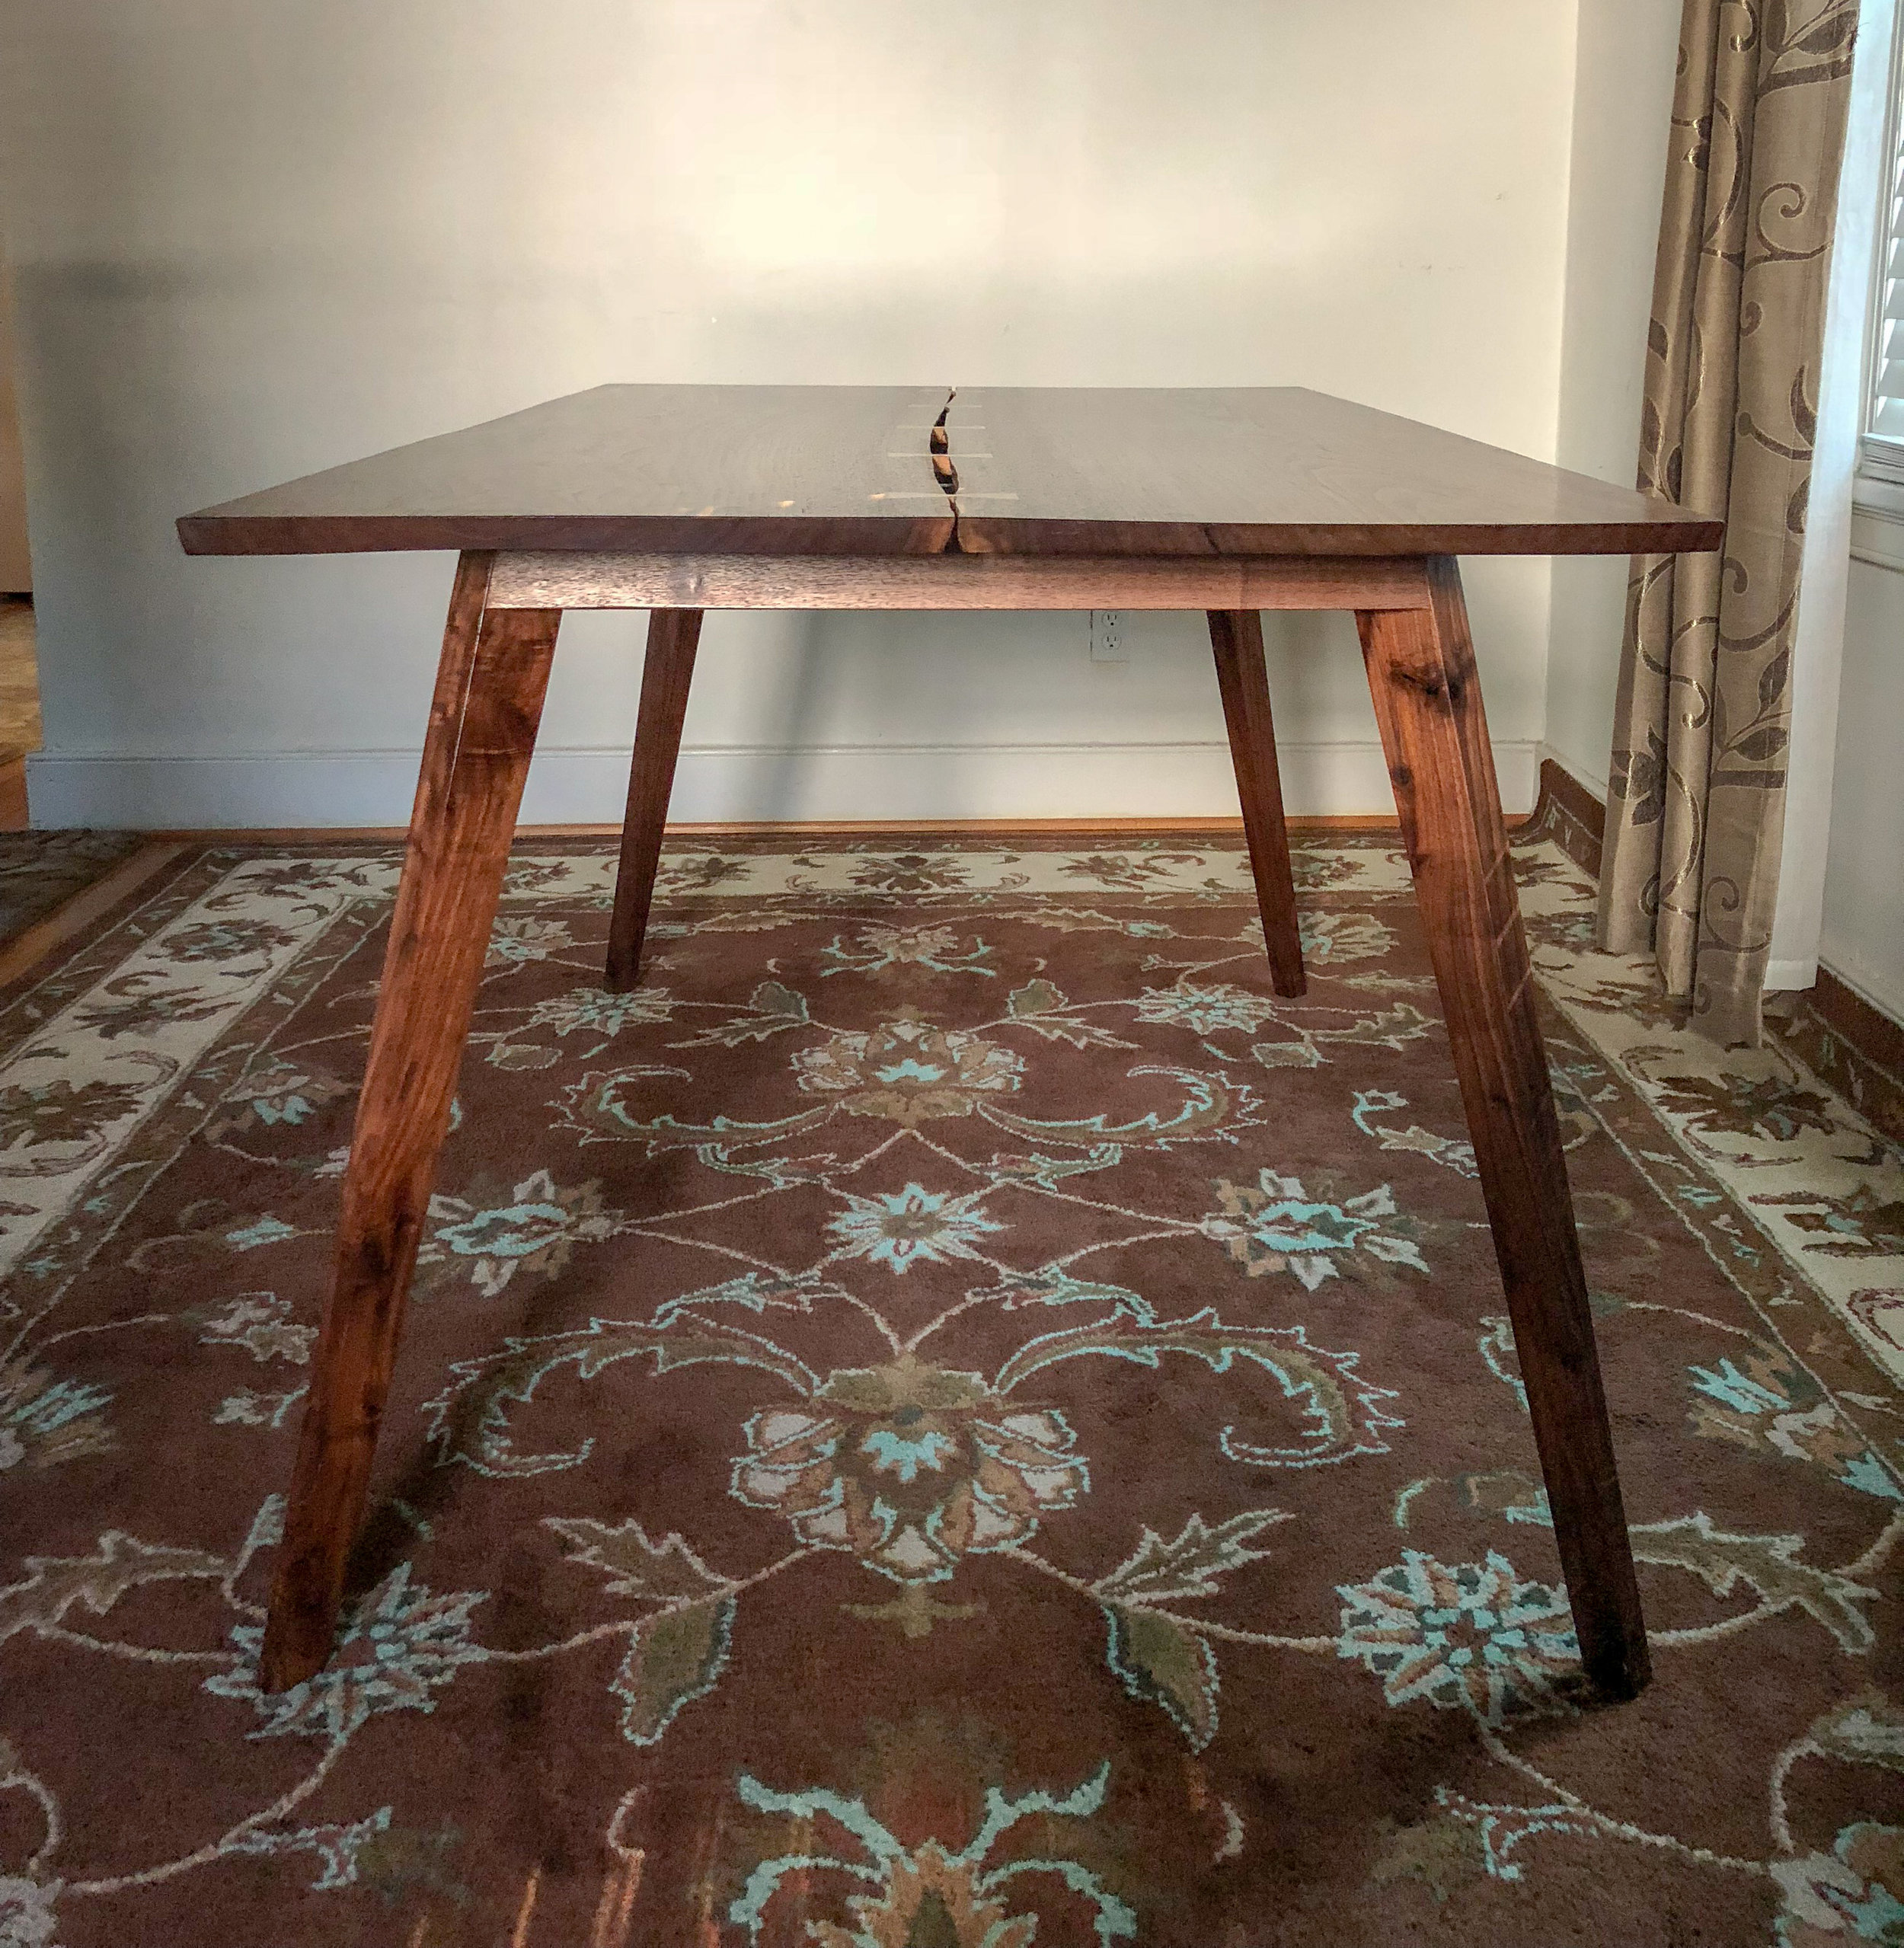 Inverted Live-Edge Table